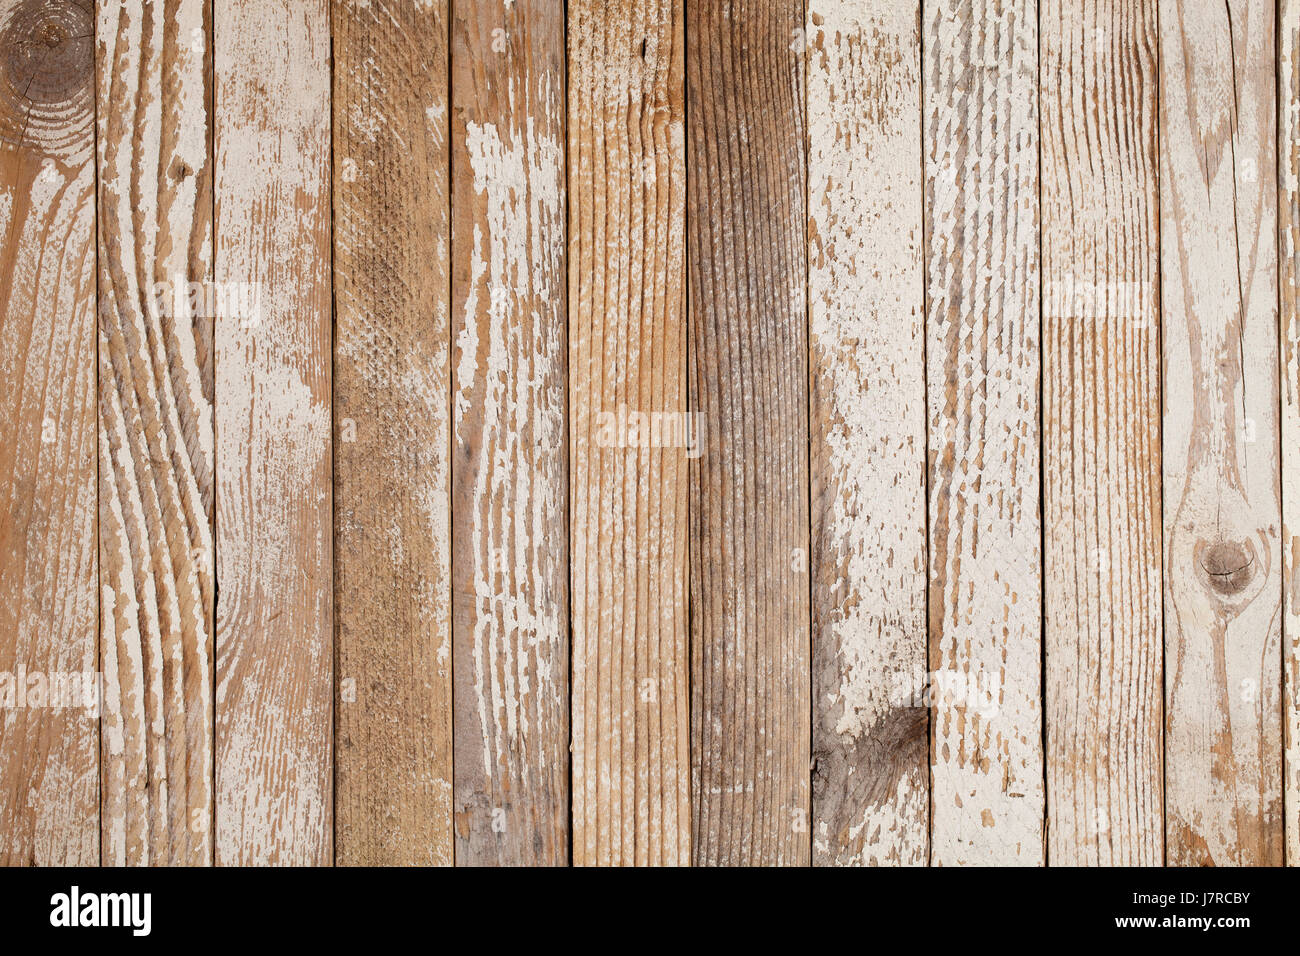 colour wood paint plank rustical rustic old weathered knot texture